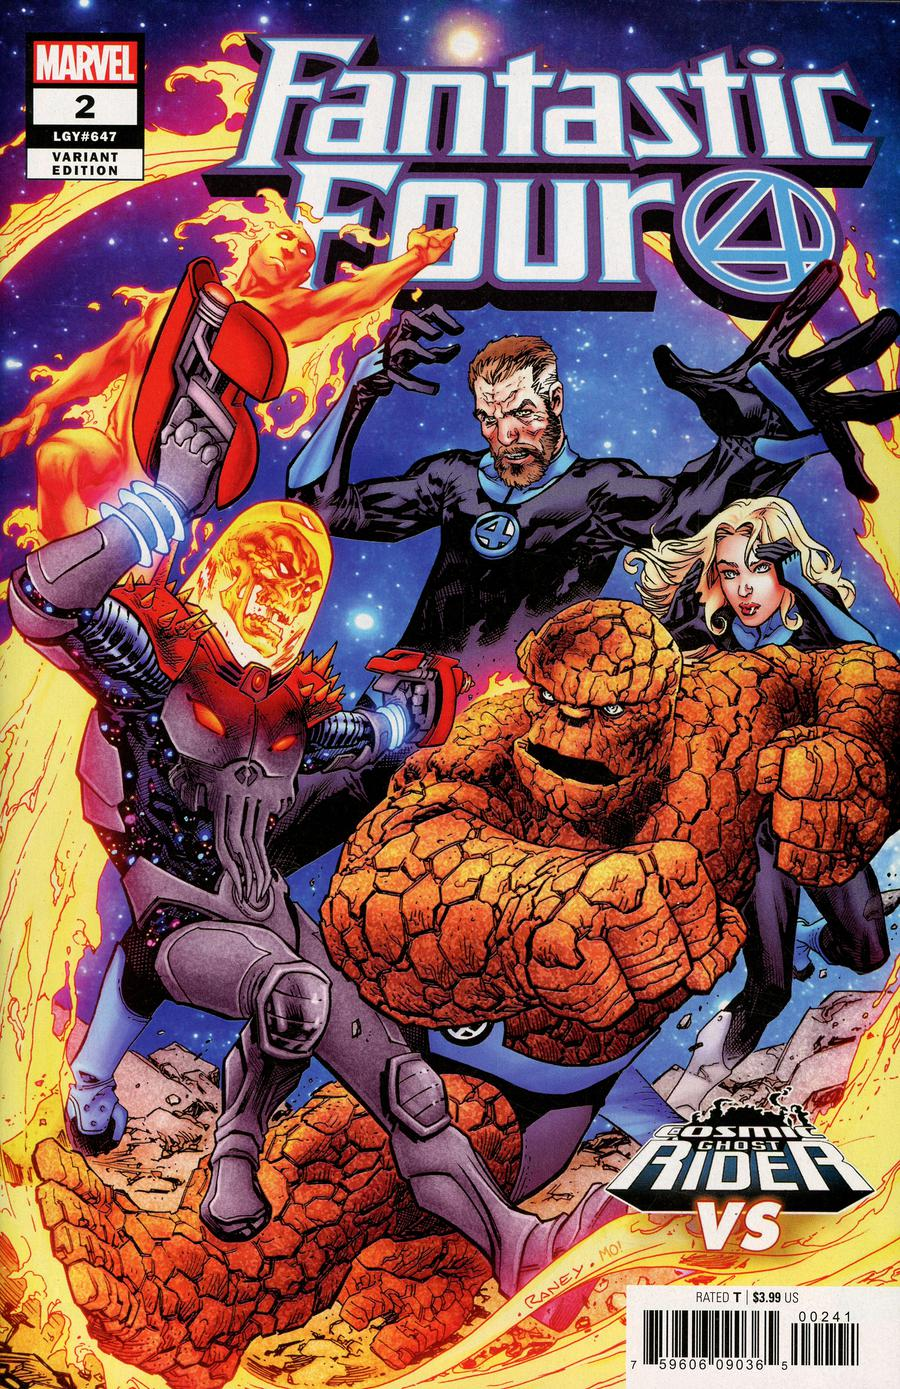 Fantastic Four Vol 6 #2 Cover B Variant Tom Raney Cosmic Ghost Rider VS Cover